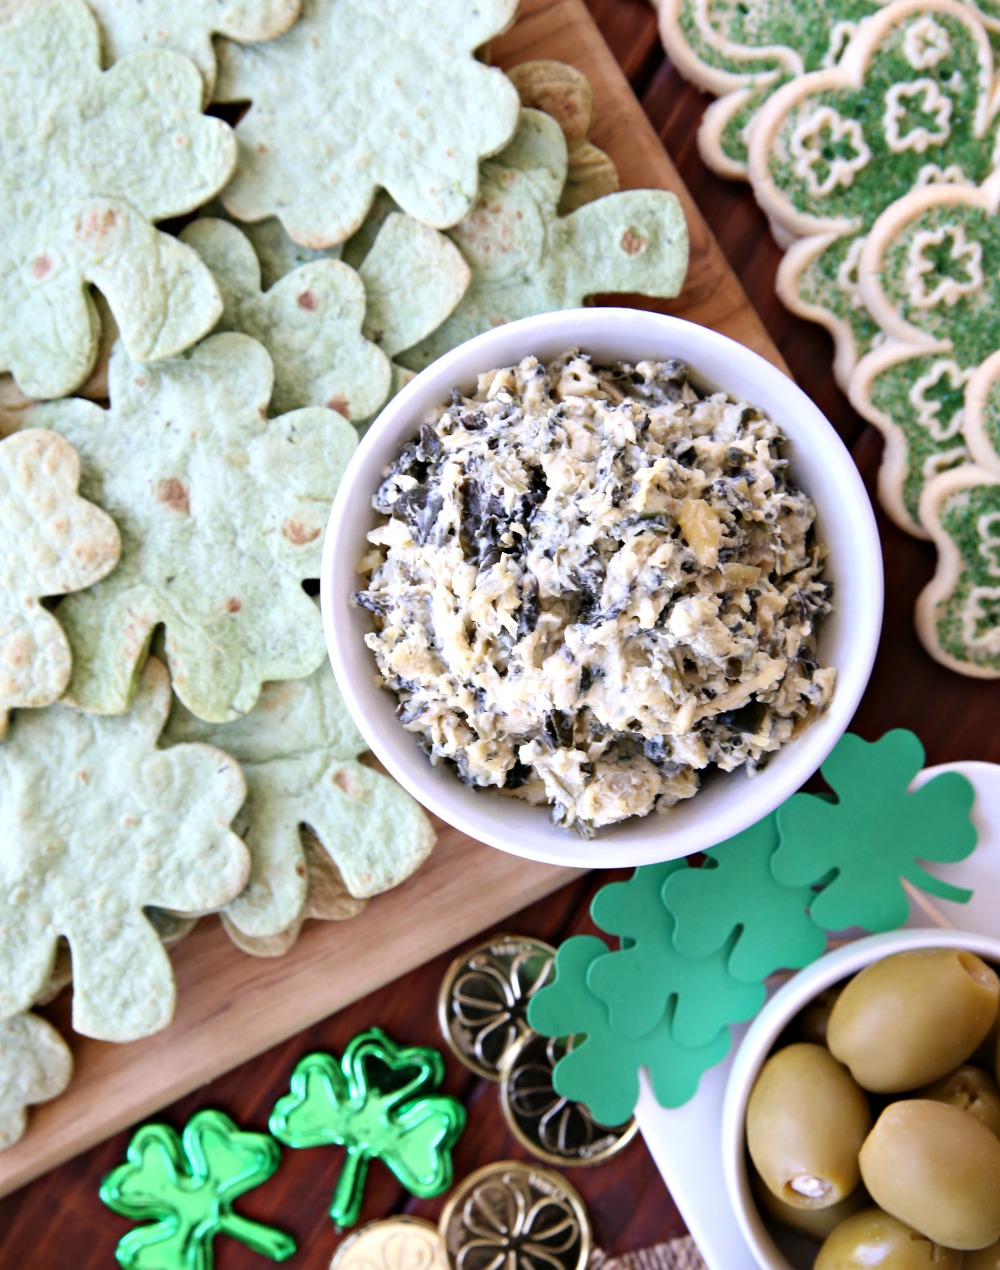 Spinach Dip - Easy St. Patrick's Day Appetizers